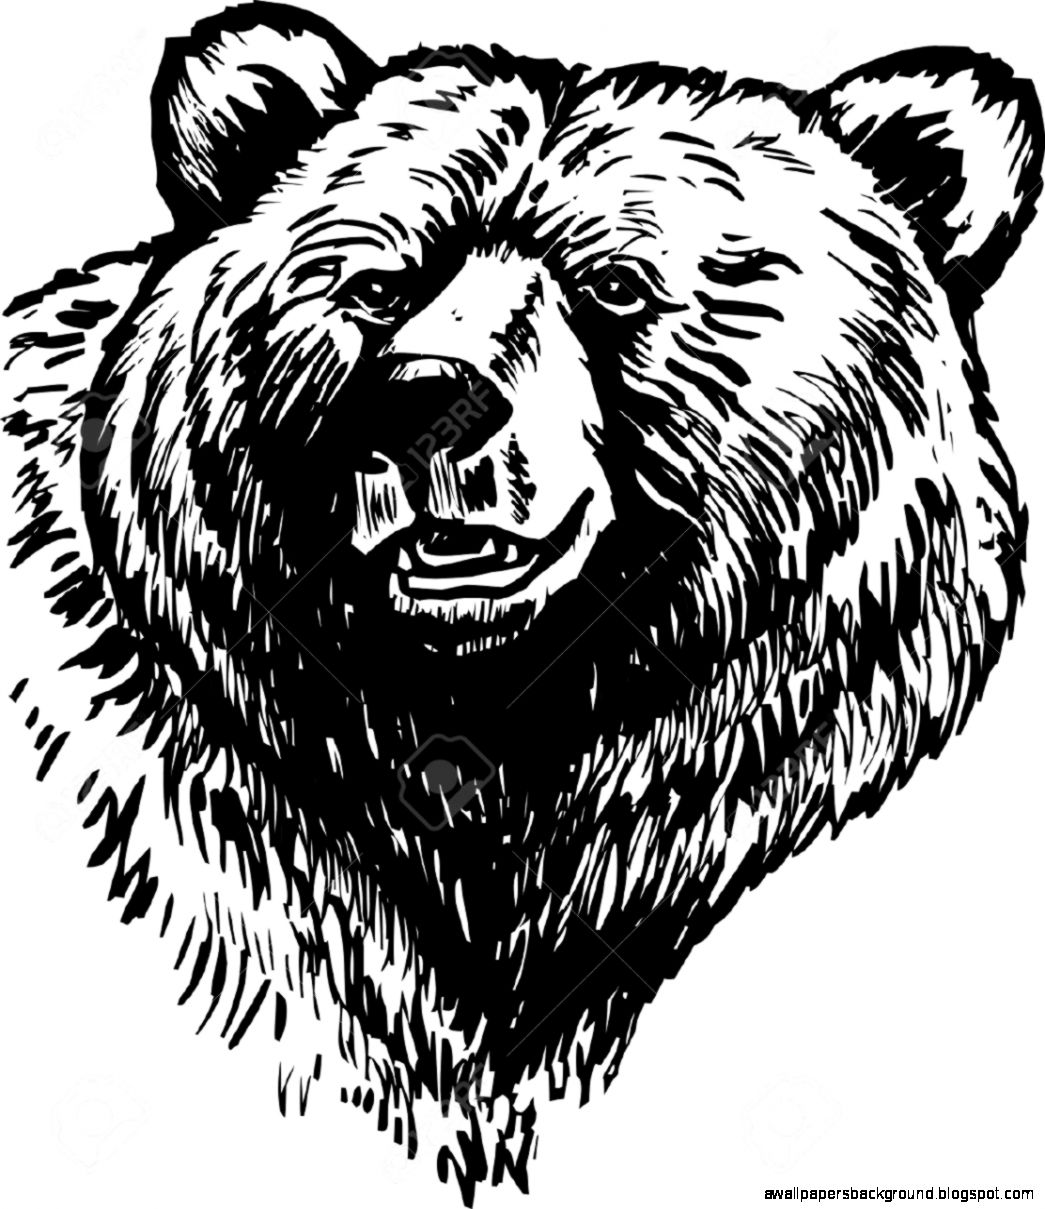 1045x1209 Bear Head Drawing Wallpapers Background